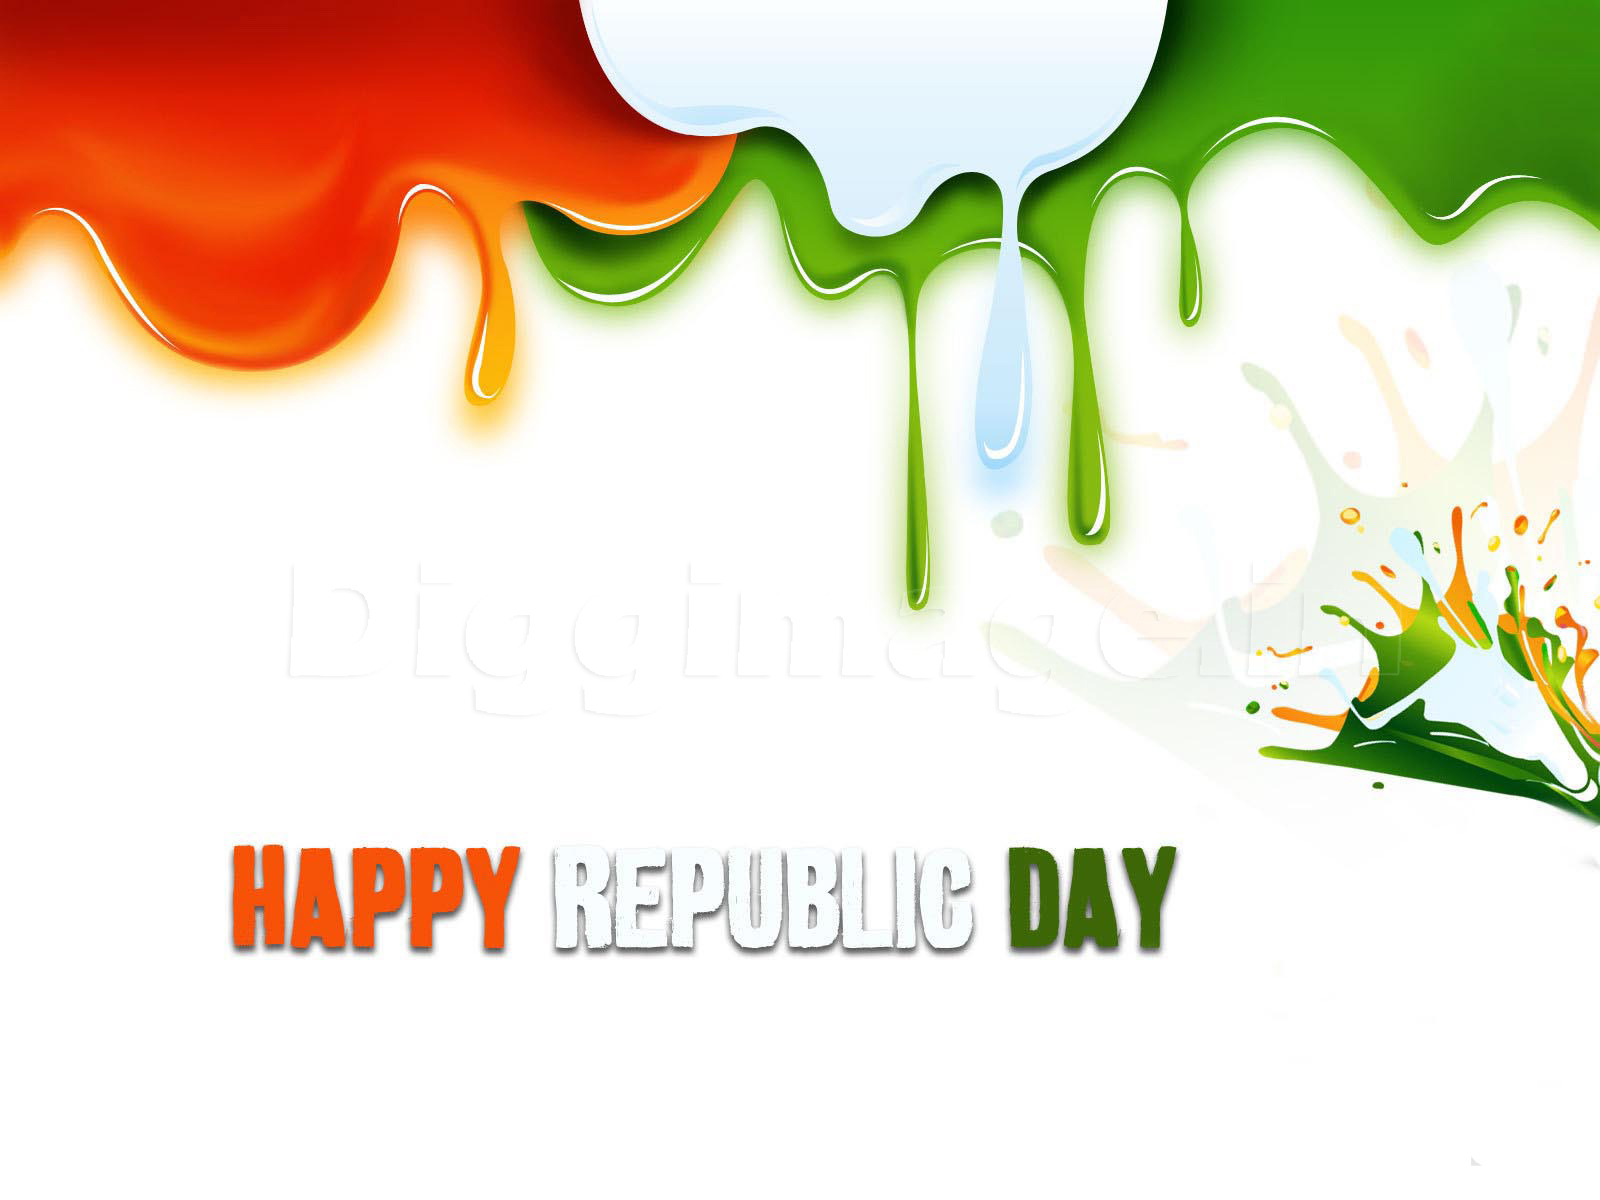 http://4.bp.blogspot.com/-mrwSMlCquWQ/UOfNa0MwGgI/AAAAAAAAAyA/XOdG2XxcJcY/s1600/indian+republic+day+greetings+hd+wallpaper.JPG